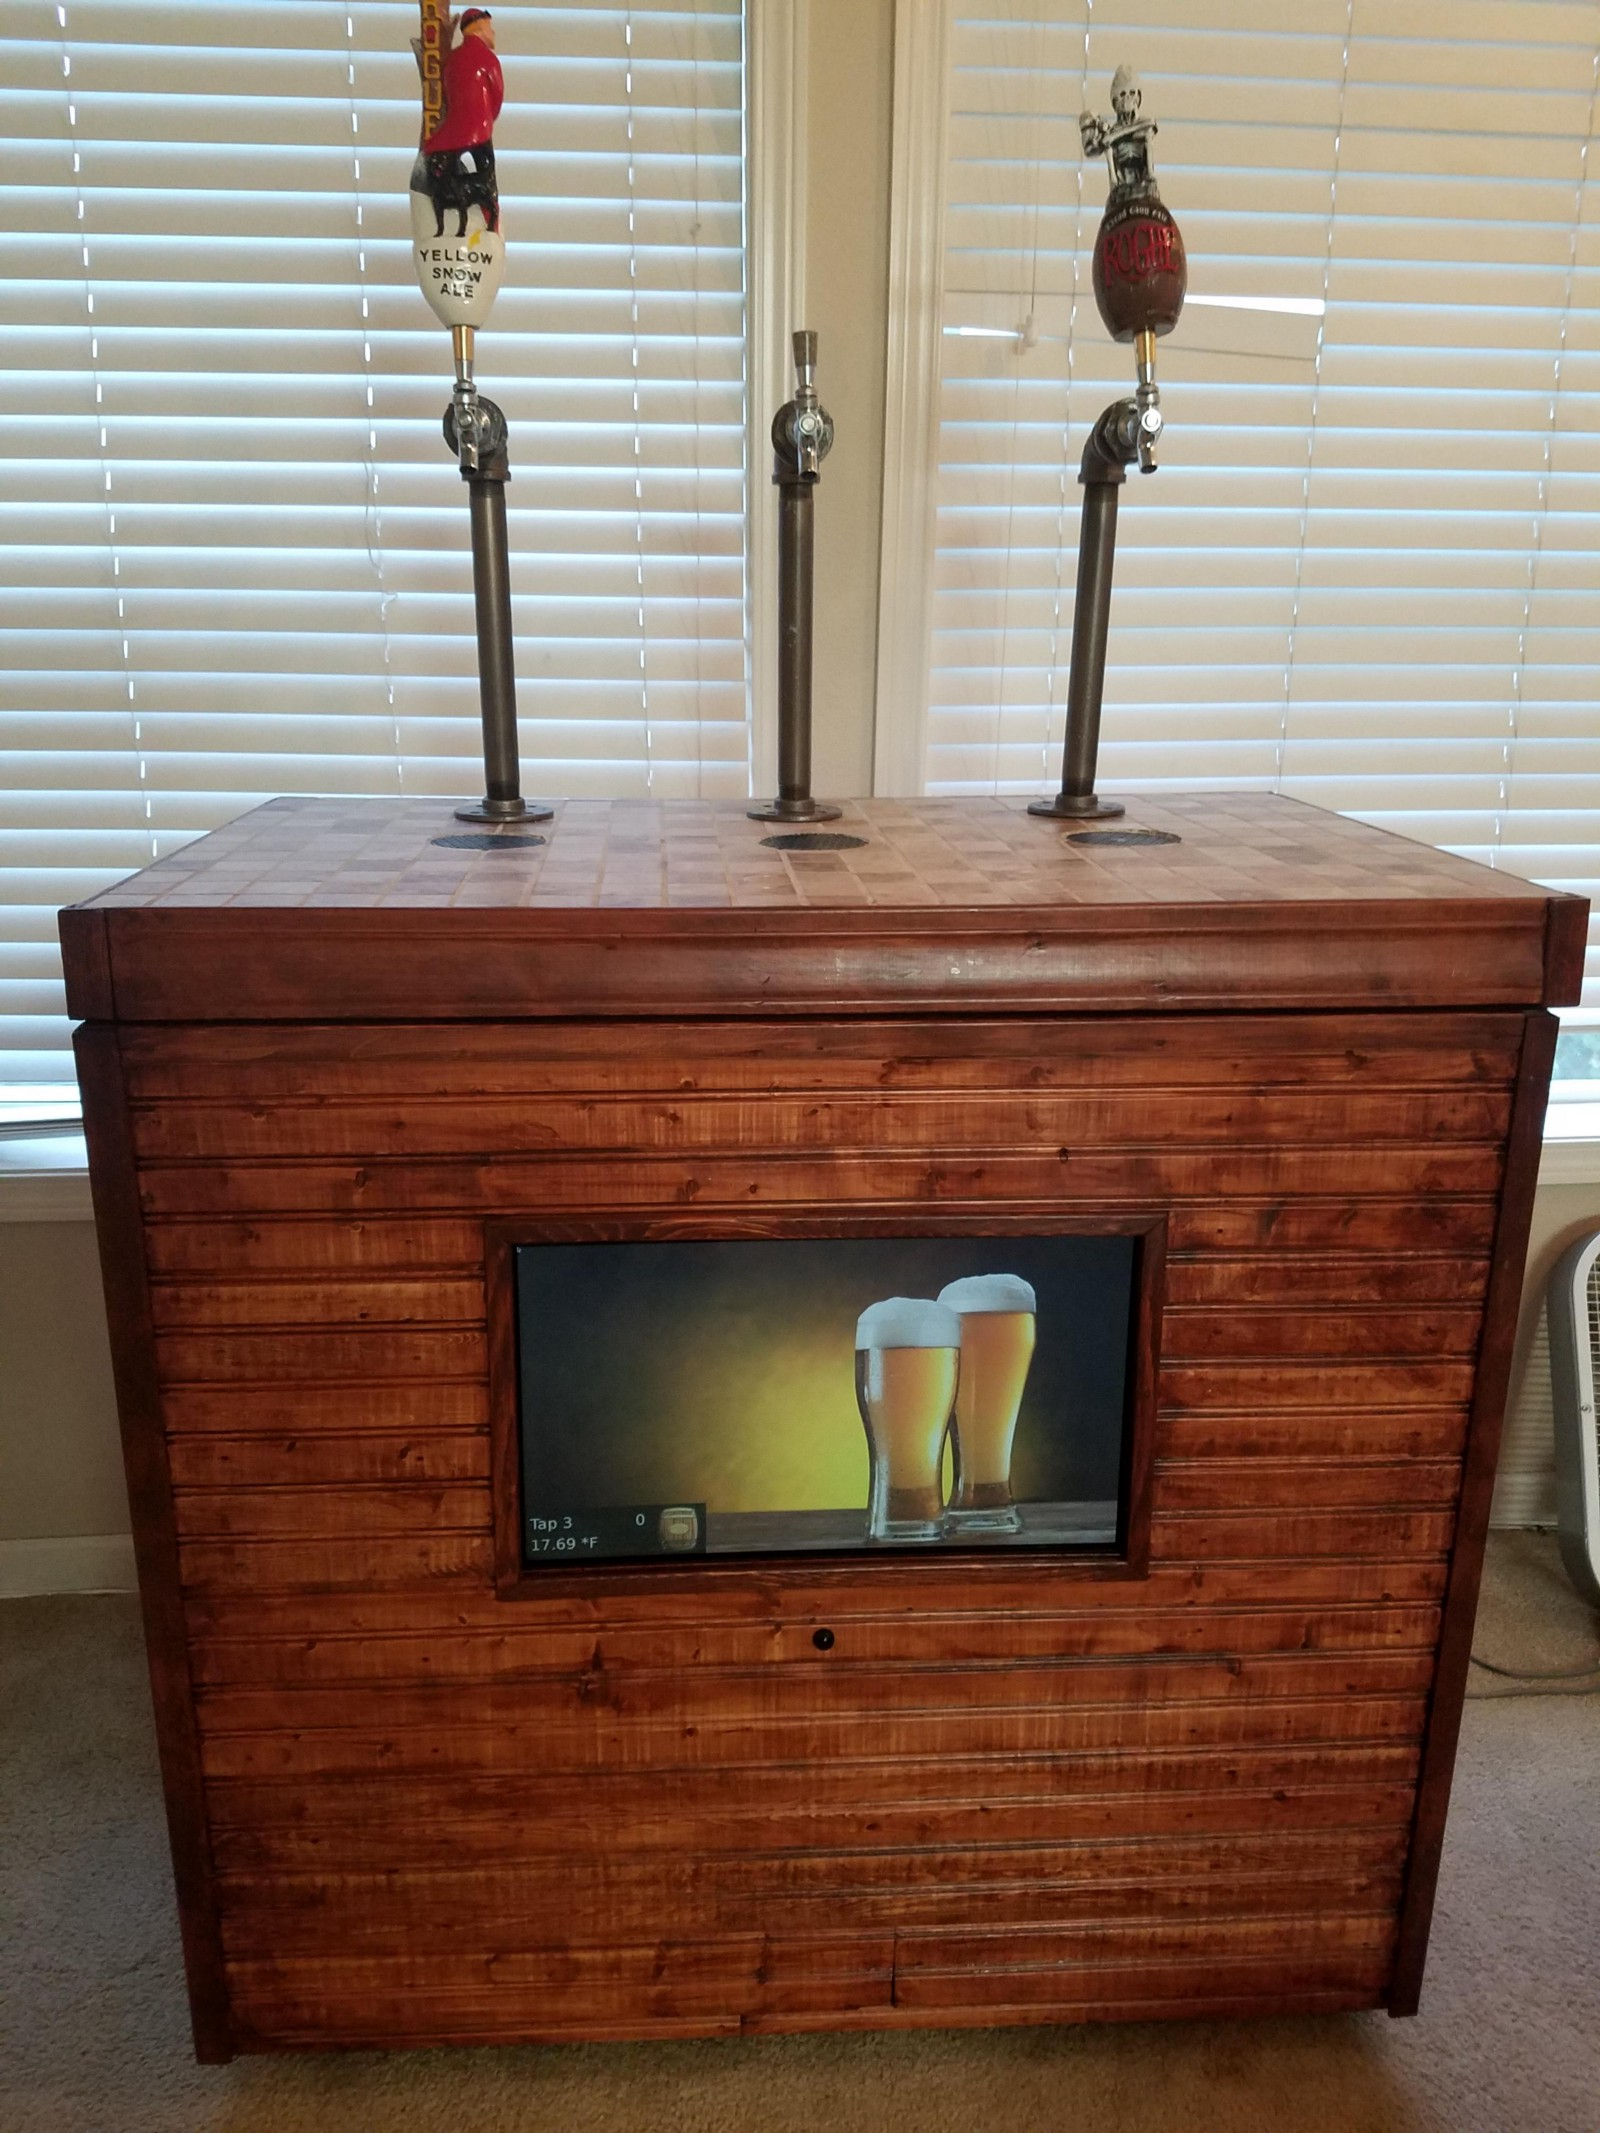 how to make a kegerator out of a chest freezer